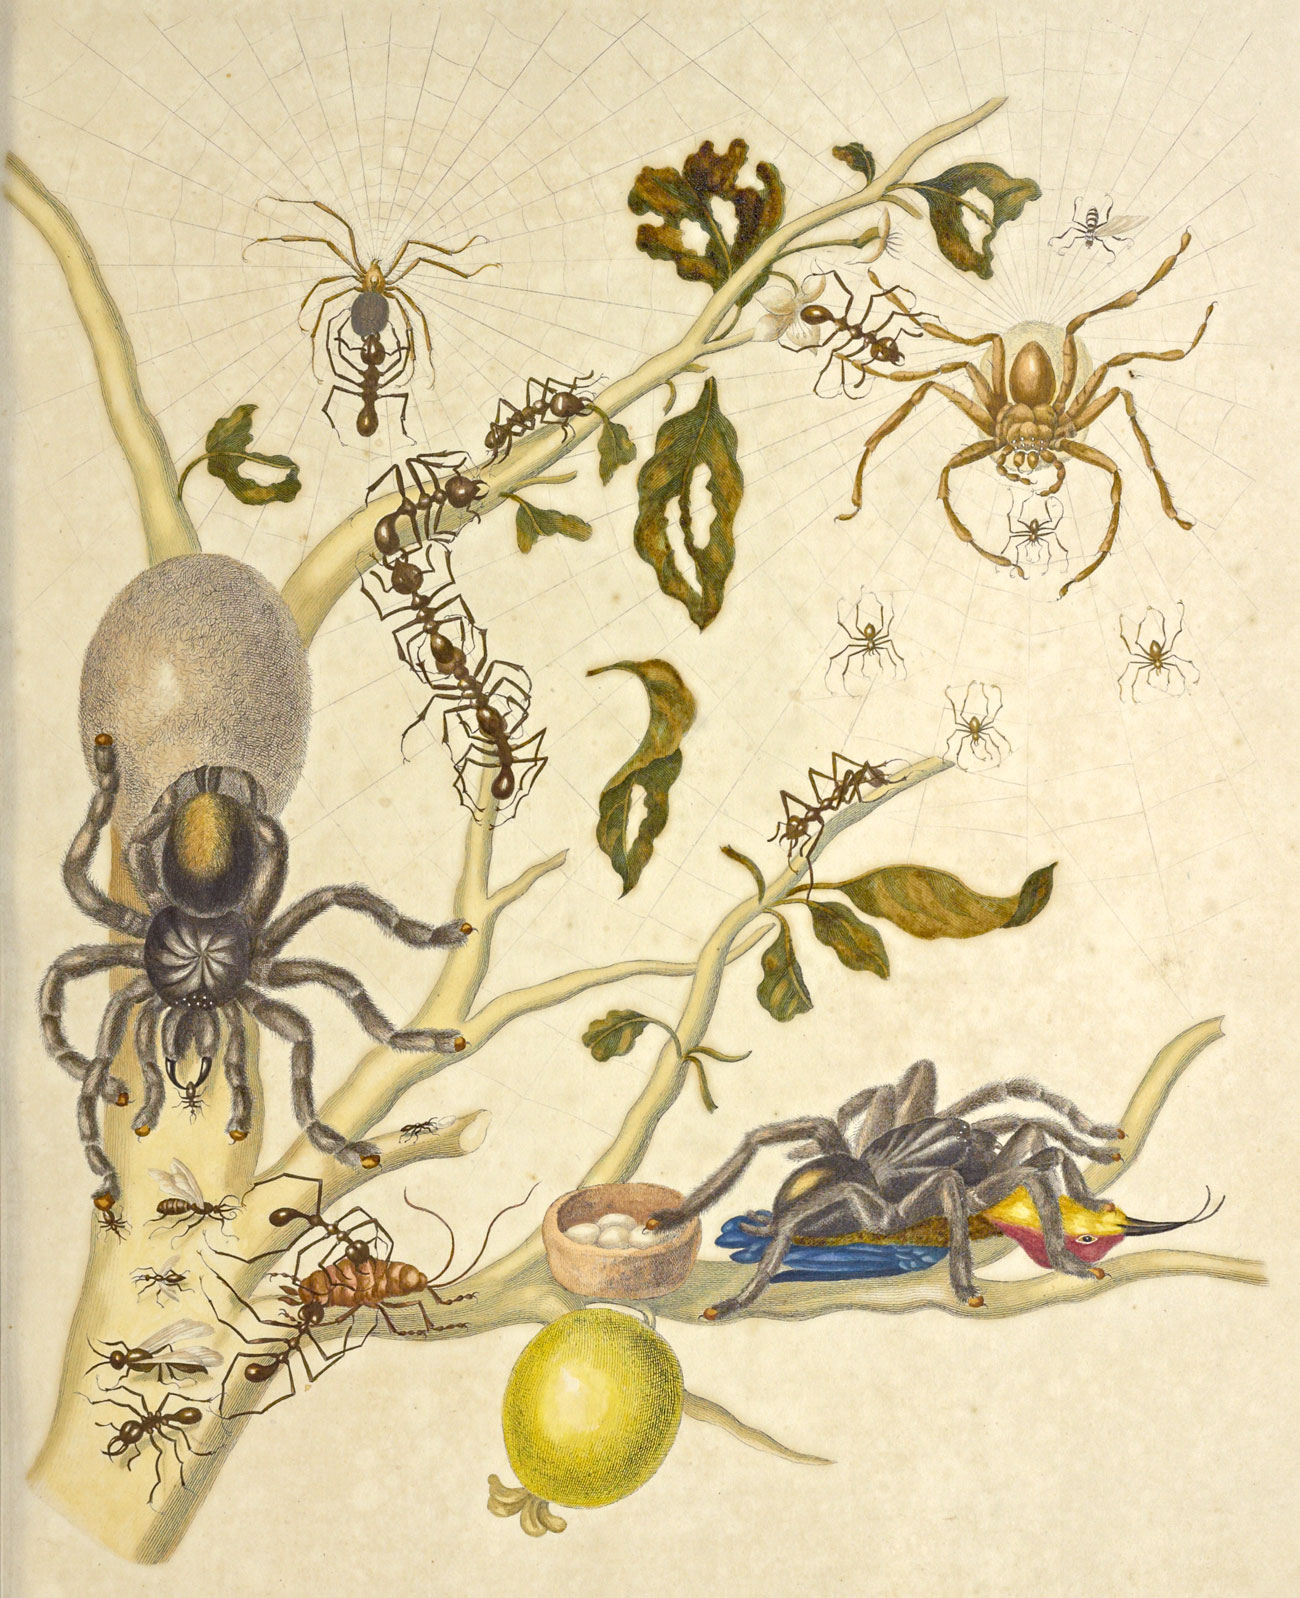 A branch with a guava hanging from it and a variety of bugs including tarantulas, and other spiders, ants, flies and a roach.